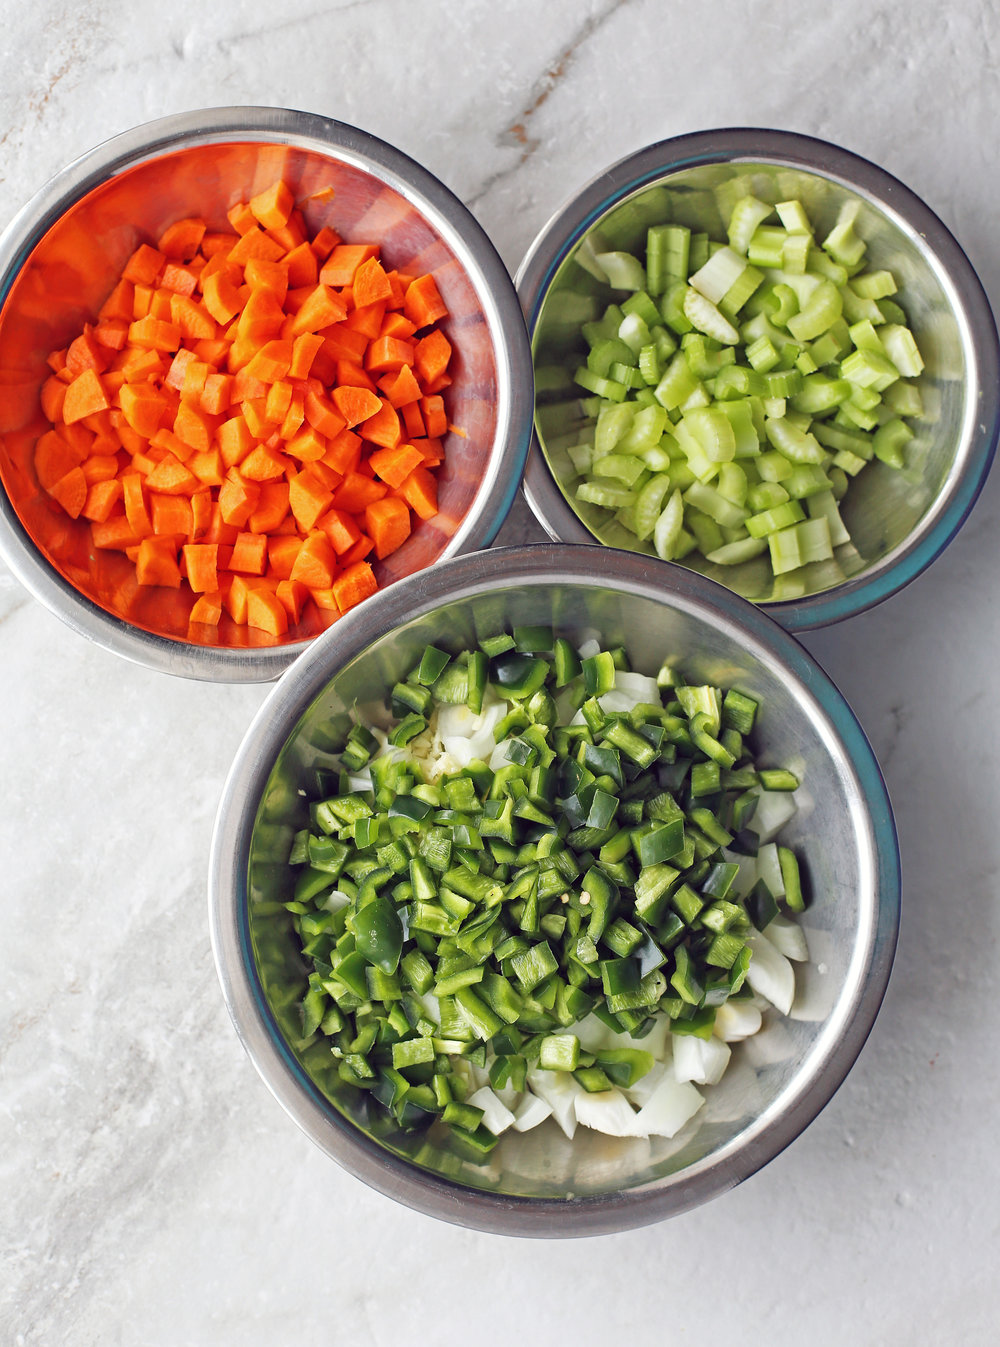 Three metal bowls containing diced peppers, onions, carrots, and celery.